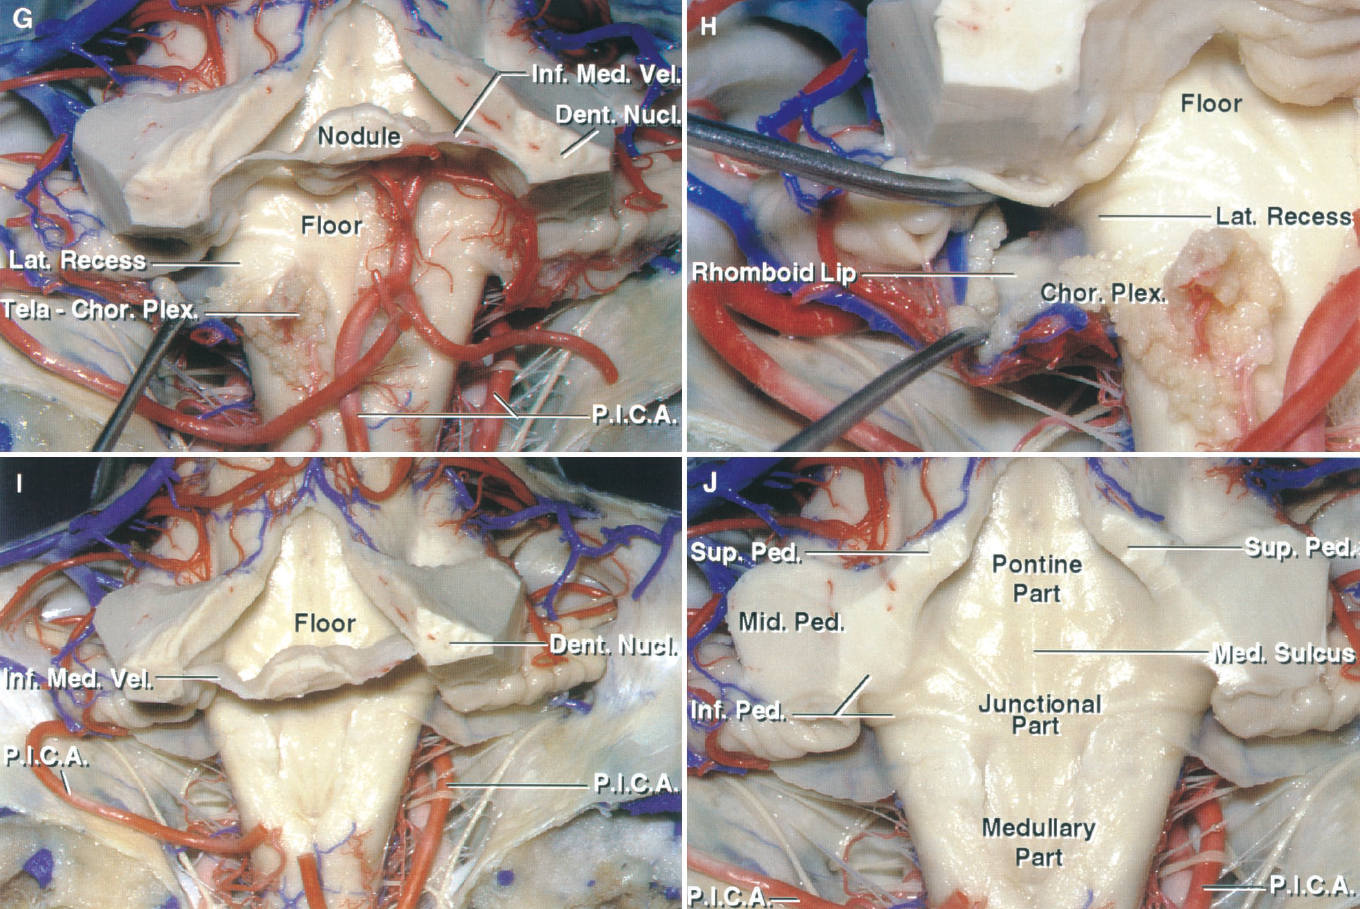 Figure 1.9. G–J. Posterior views. G, the tela choroidea, in which the choroid plexus arises, has been folded downward to expose the lower part of the floor. H, enlarged view of the left lateral recess and the foramen of Luschka. The rhomboid lip is a thin layer of neural tissue, which extends laterally from the anterior margin of the lateral recess and, with the tela choroidea, forms a pouch at the outer edge of the lateral recess. Choroid plexus extends through the lateral recess and foramen of Luschka into the cerebellopontine angle. I, the tela has been removed to expose the parts of the floor located above and below the nodule and inferior medullary velum. J, the nodule and the inferior medullary velum have been removed to expose the full length of the floor, which is divided in the midline by the median sulcus and craniocaudally into pontine, junctional, and medullary parts. The superior and inferior peduncles face the ventricular surface. The middle cerebellar peduncle is separated from the ventricular surface by the superior and inferior peduncles. Chor., choroid; Dent., dentate; Inf., inferior; Lat., lateral; Med., median, medullary; Mid., middle; Nucl., nucleus; P.I.C.A., posteroinferior cerebellar artery; Ped., peduncle; Plex., plexus; Sup., superior; Vel., velum.